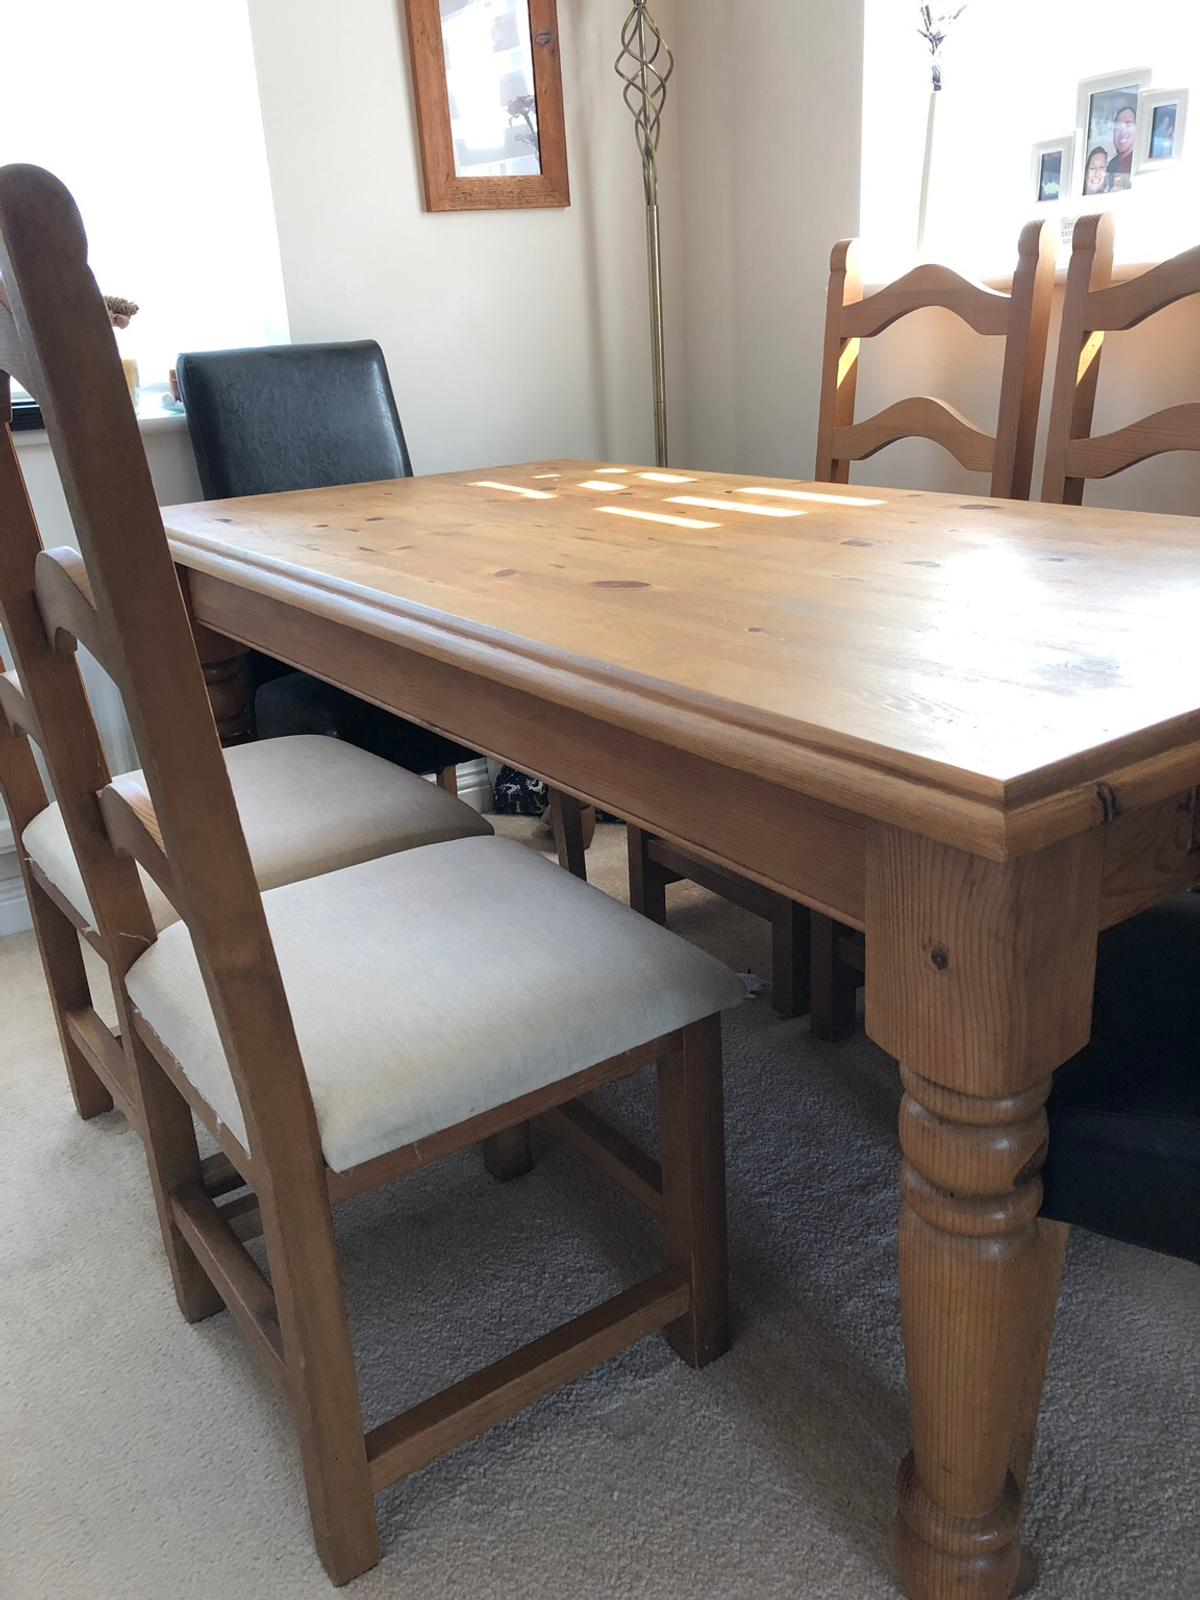 Brilliant Oak Dining Table With 6 Chairs Download Free Architecture Designs Intelgarnamadebymaigaardcom